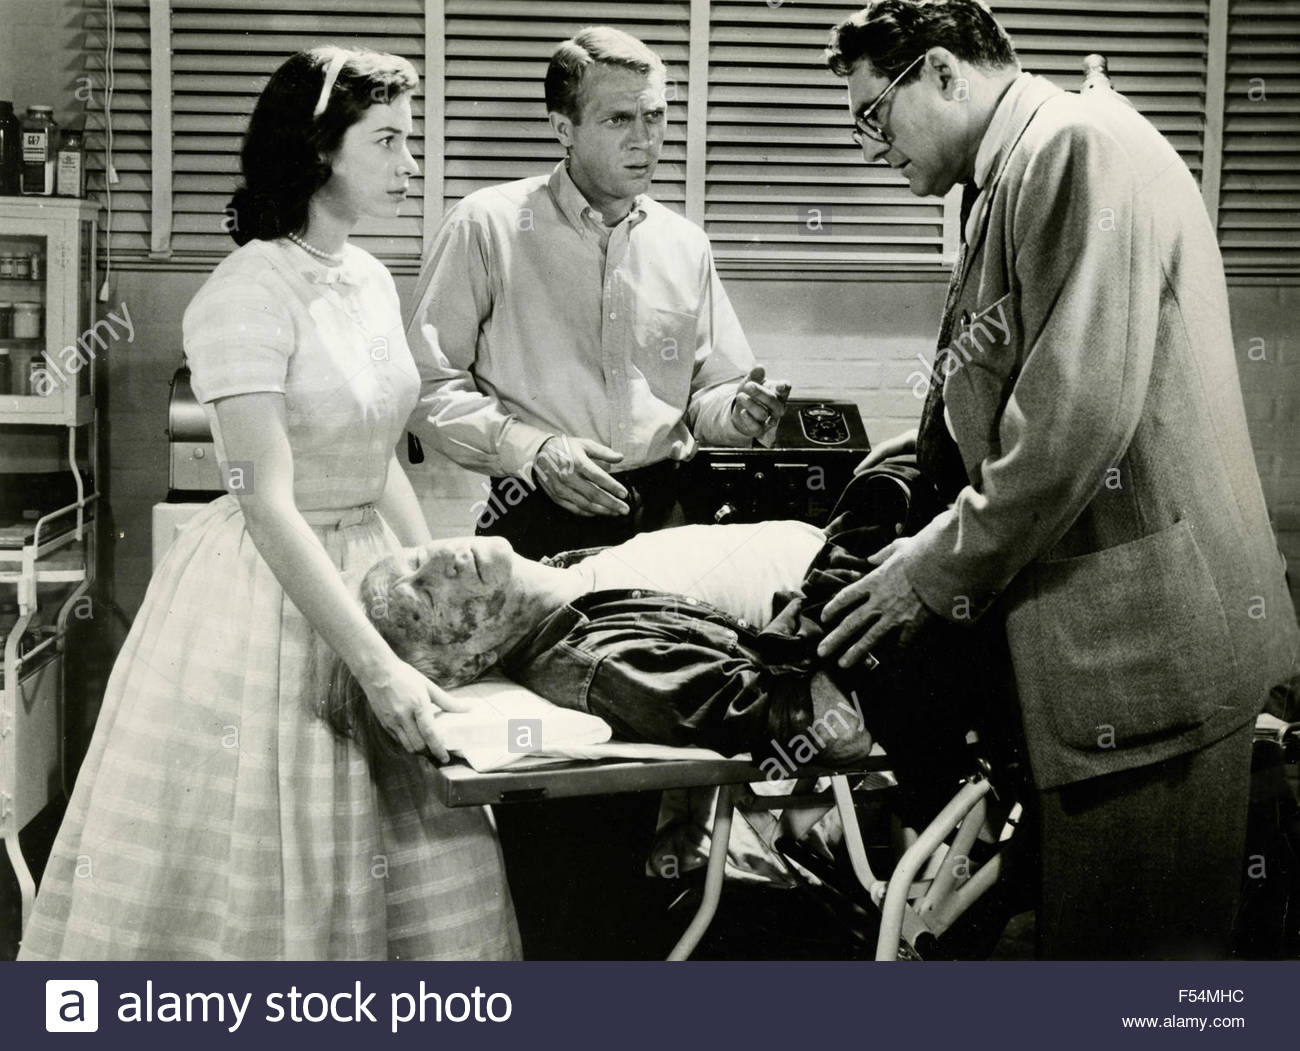 The actors Steve McQueen and Aneta Corsaut in the movie 'The Blob' - Stock Image